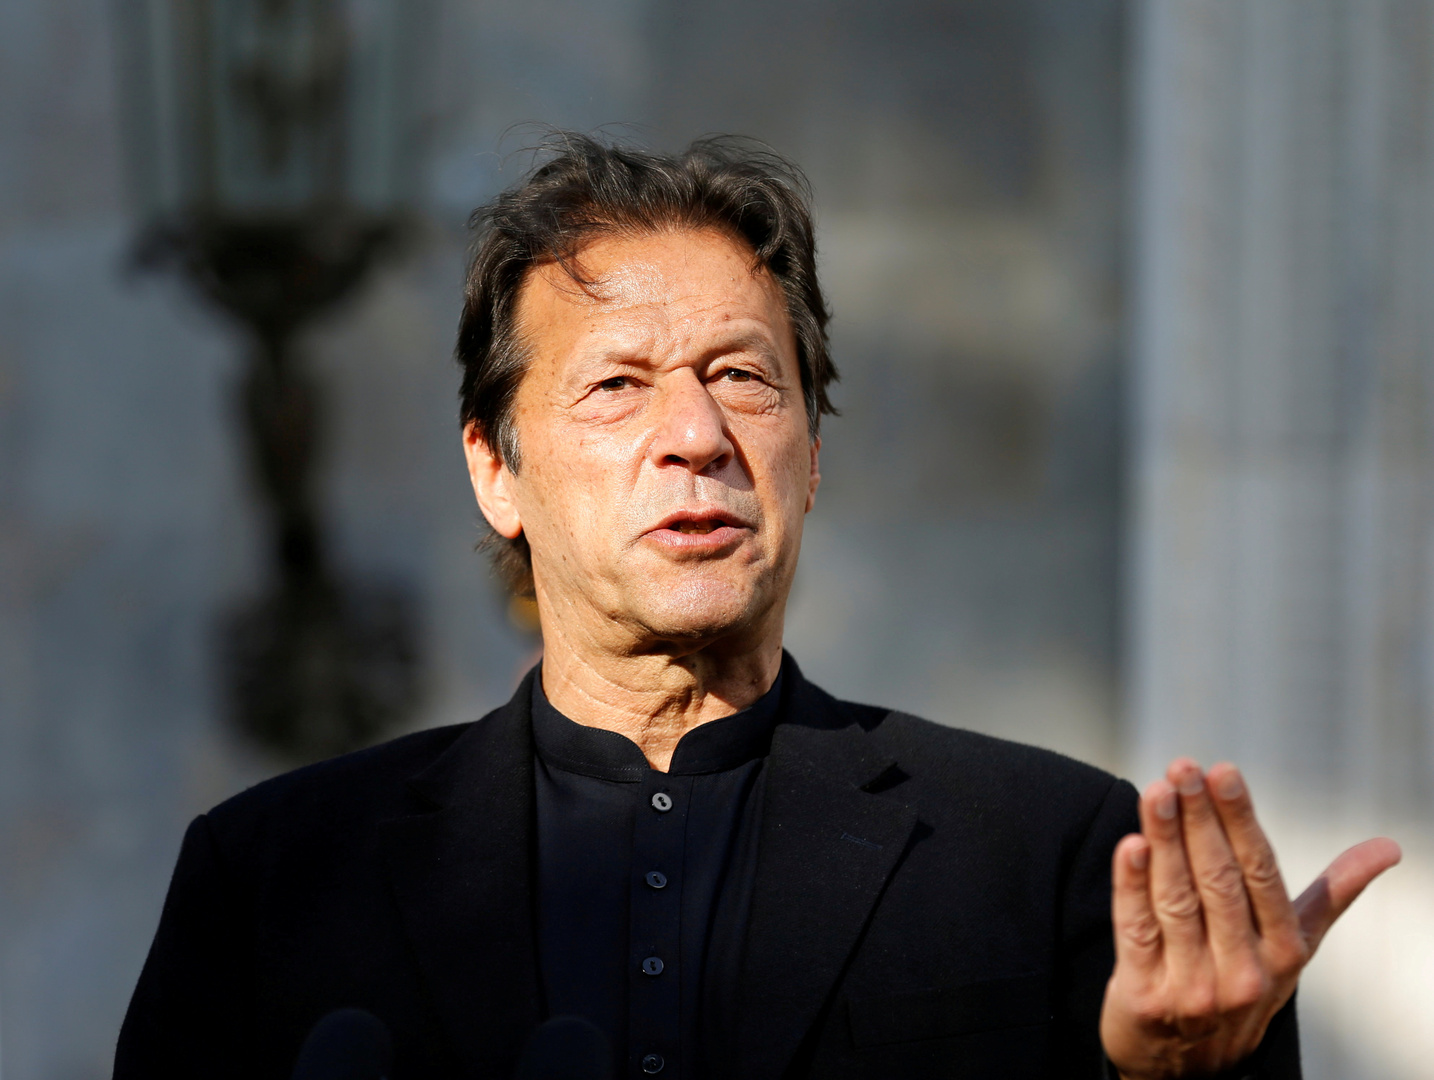 Pakistani Health Minister: The Prime Minister of Pakistan, Imran Khan, was infected with Corona virus